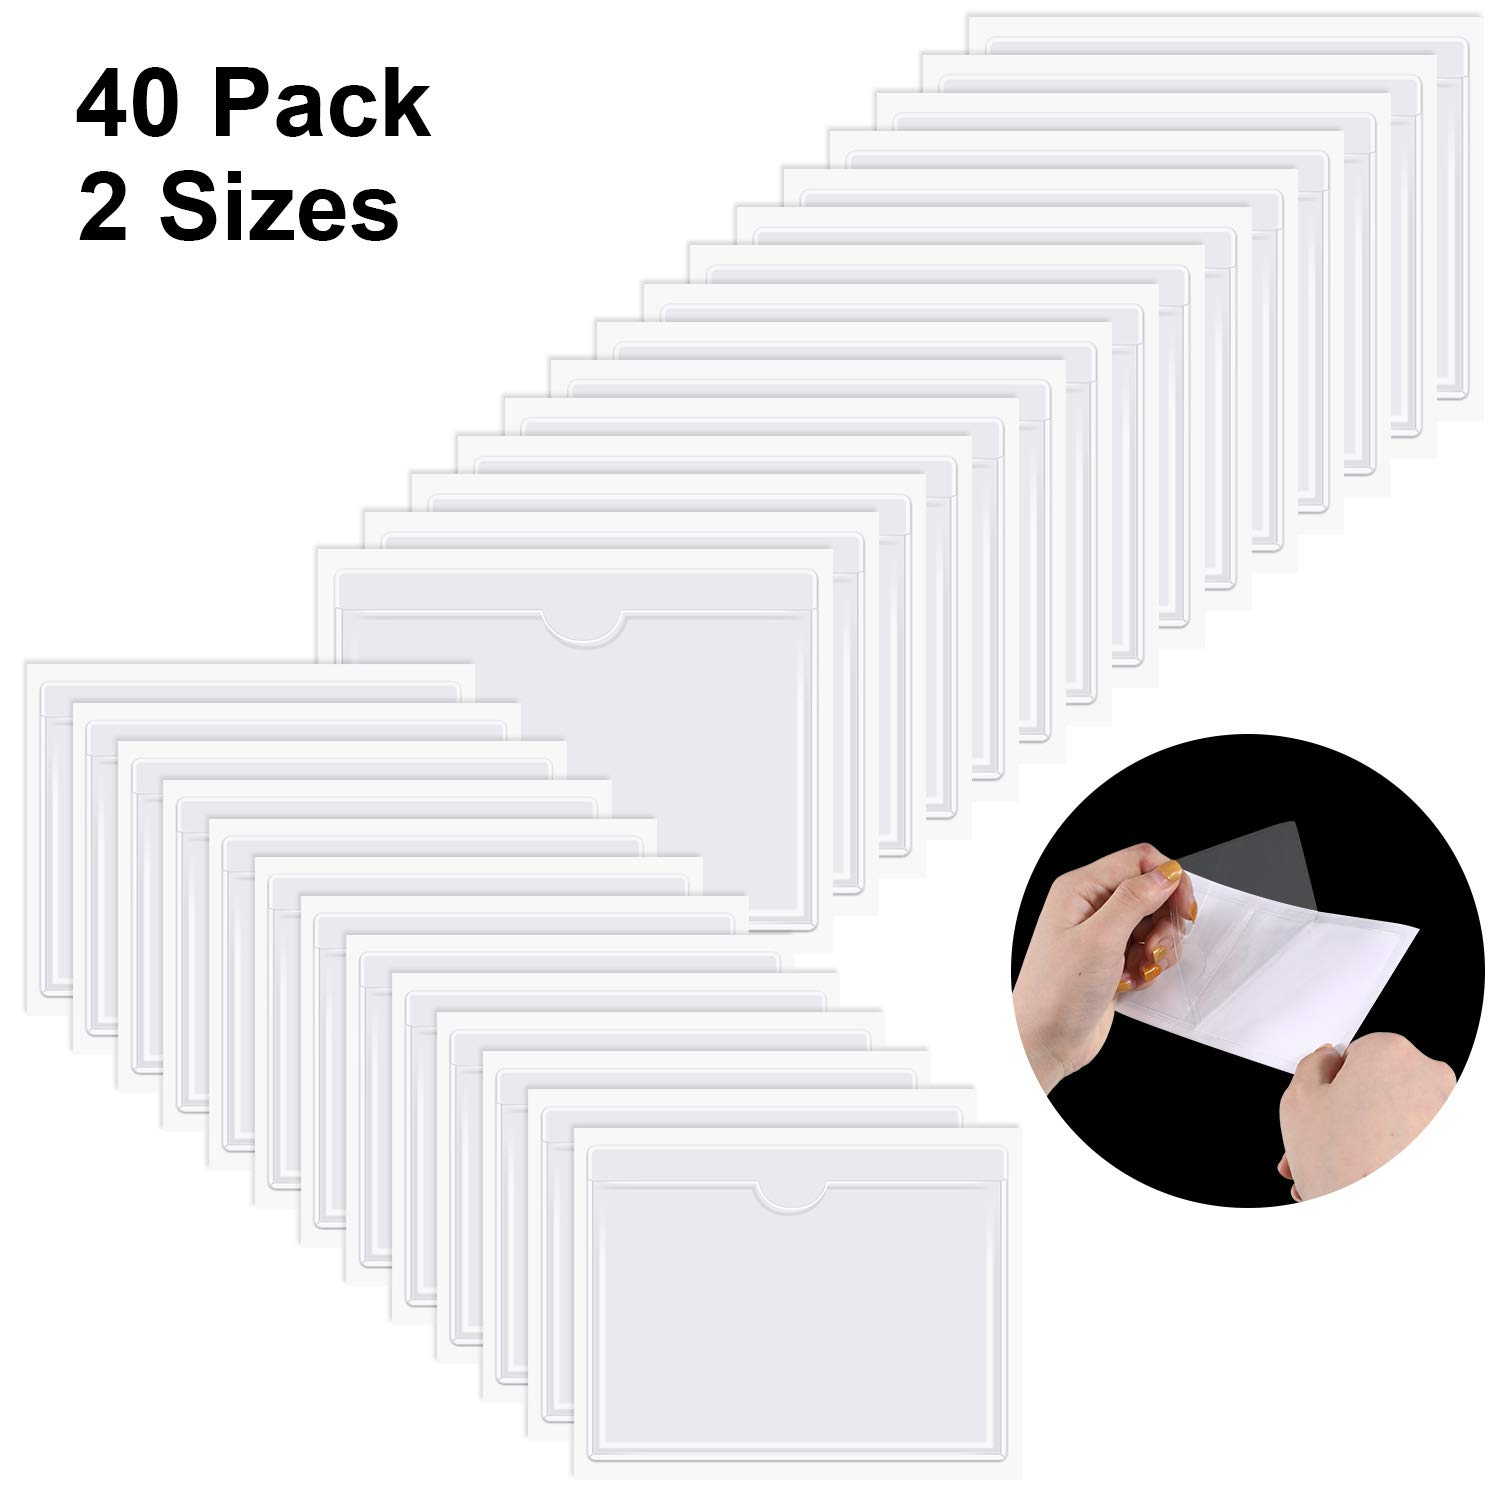 40 Pieces Self-Adhesive Card Pocket Label Pockets Self-Adhesive Business Card Holders for Organizing and Protecting Index Cards, Business Cards or Photos, 2 Sizes by Outus